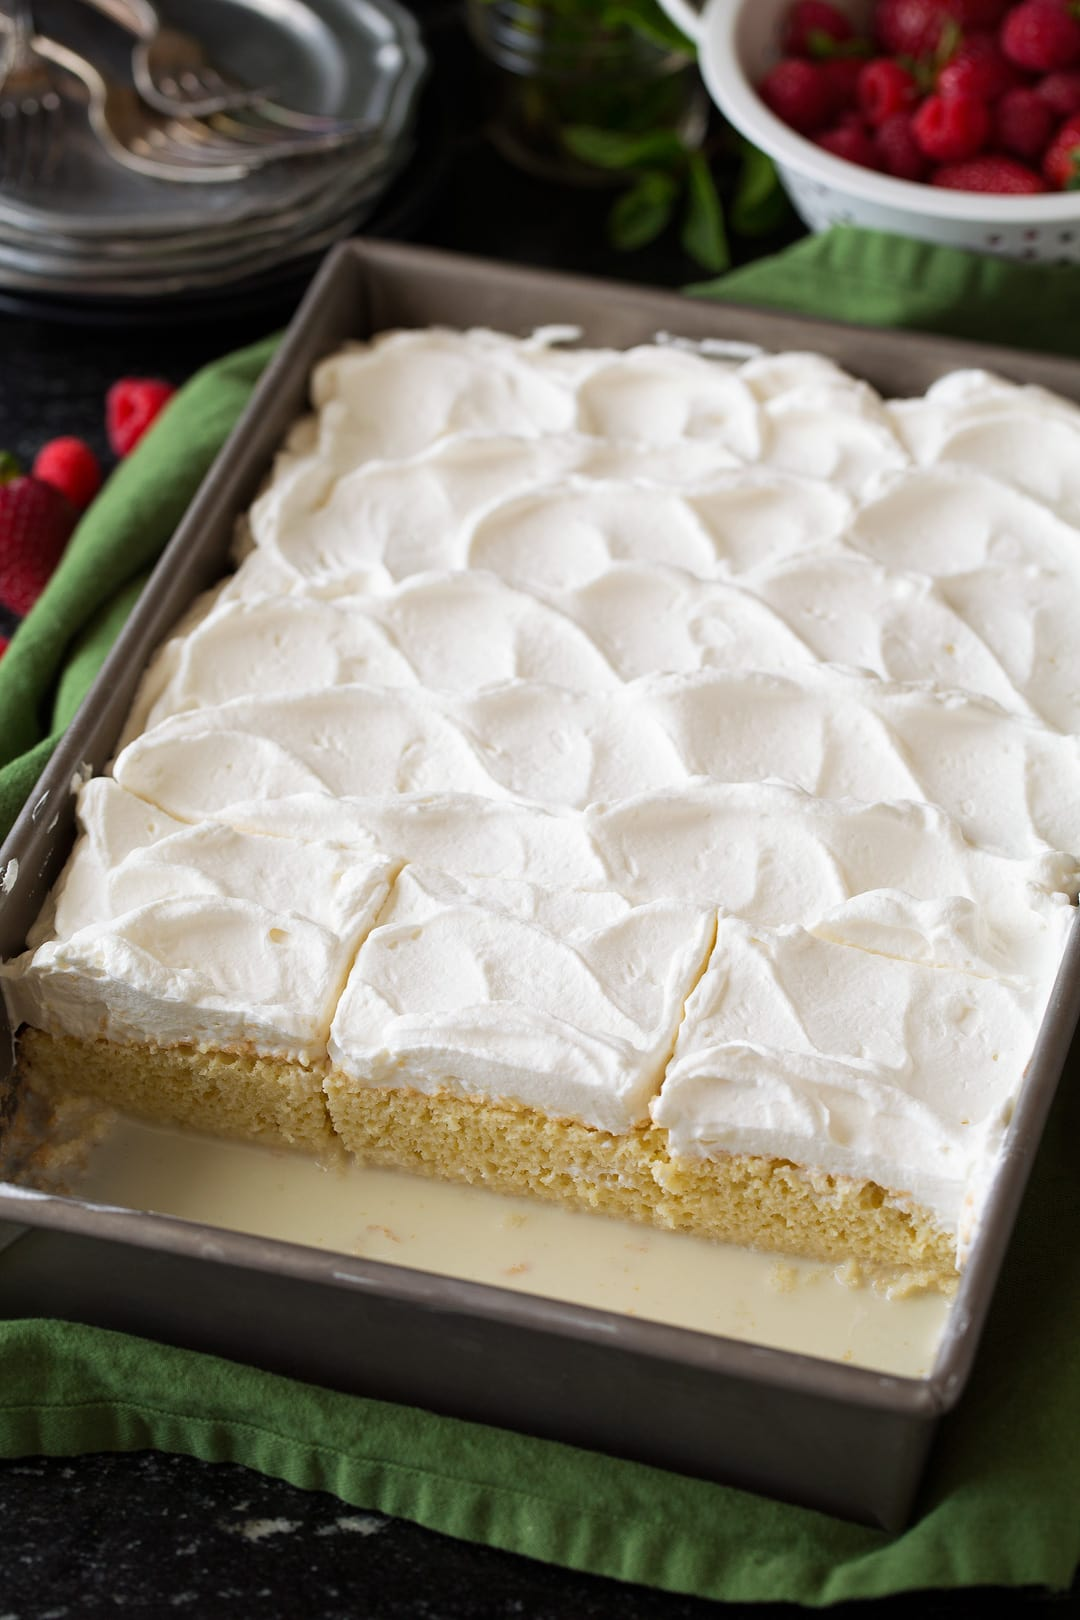 Tres Leches Cake in baking dish, shown after adding whipped cream topping.